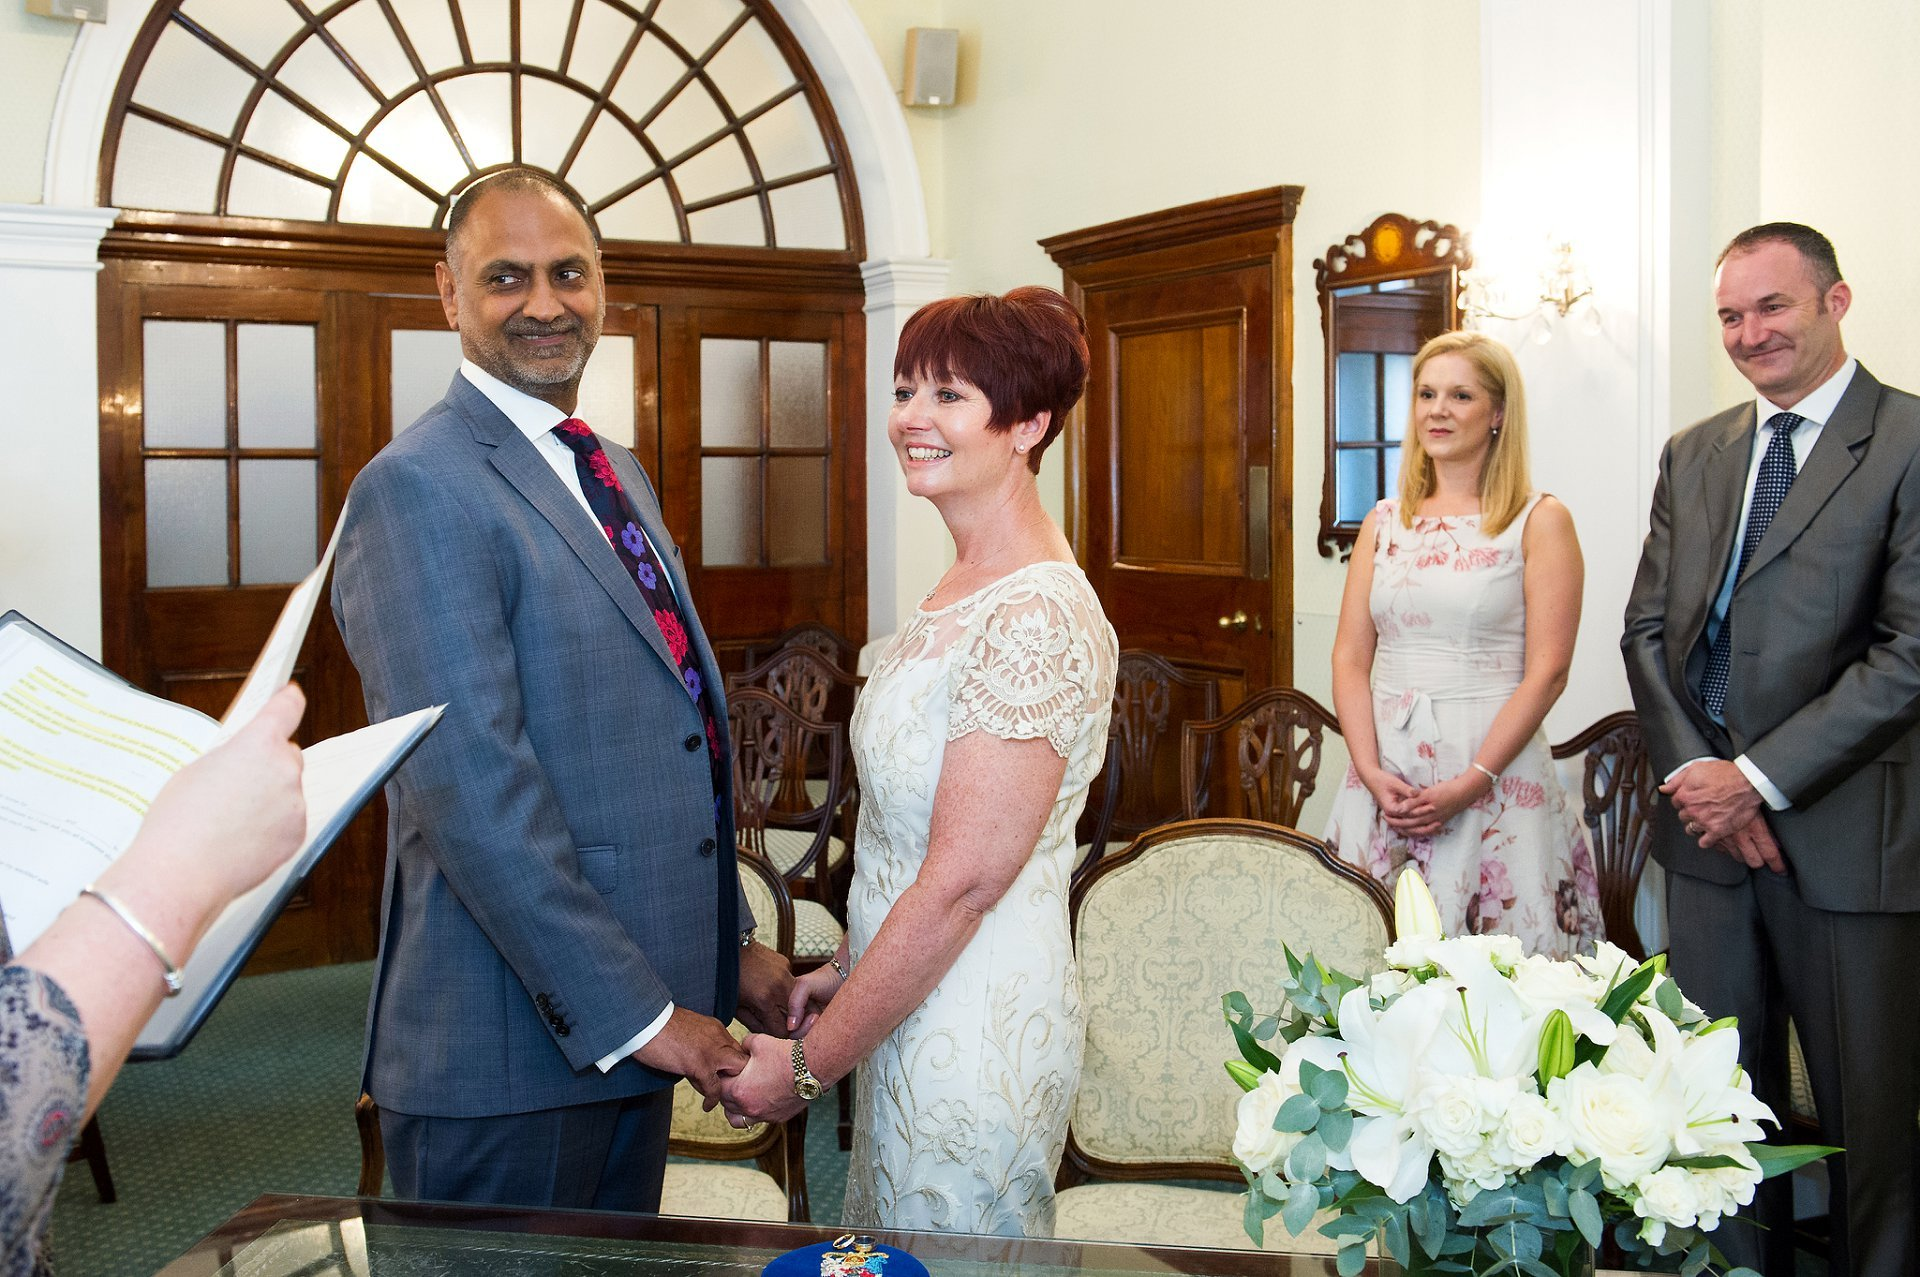 The bride and groom look towards the Chelsea Registrar during their civil marriage ceremony